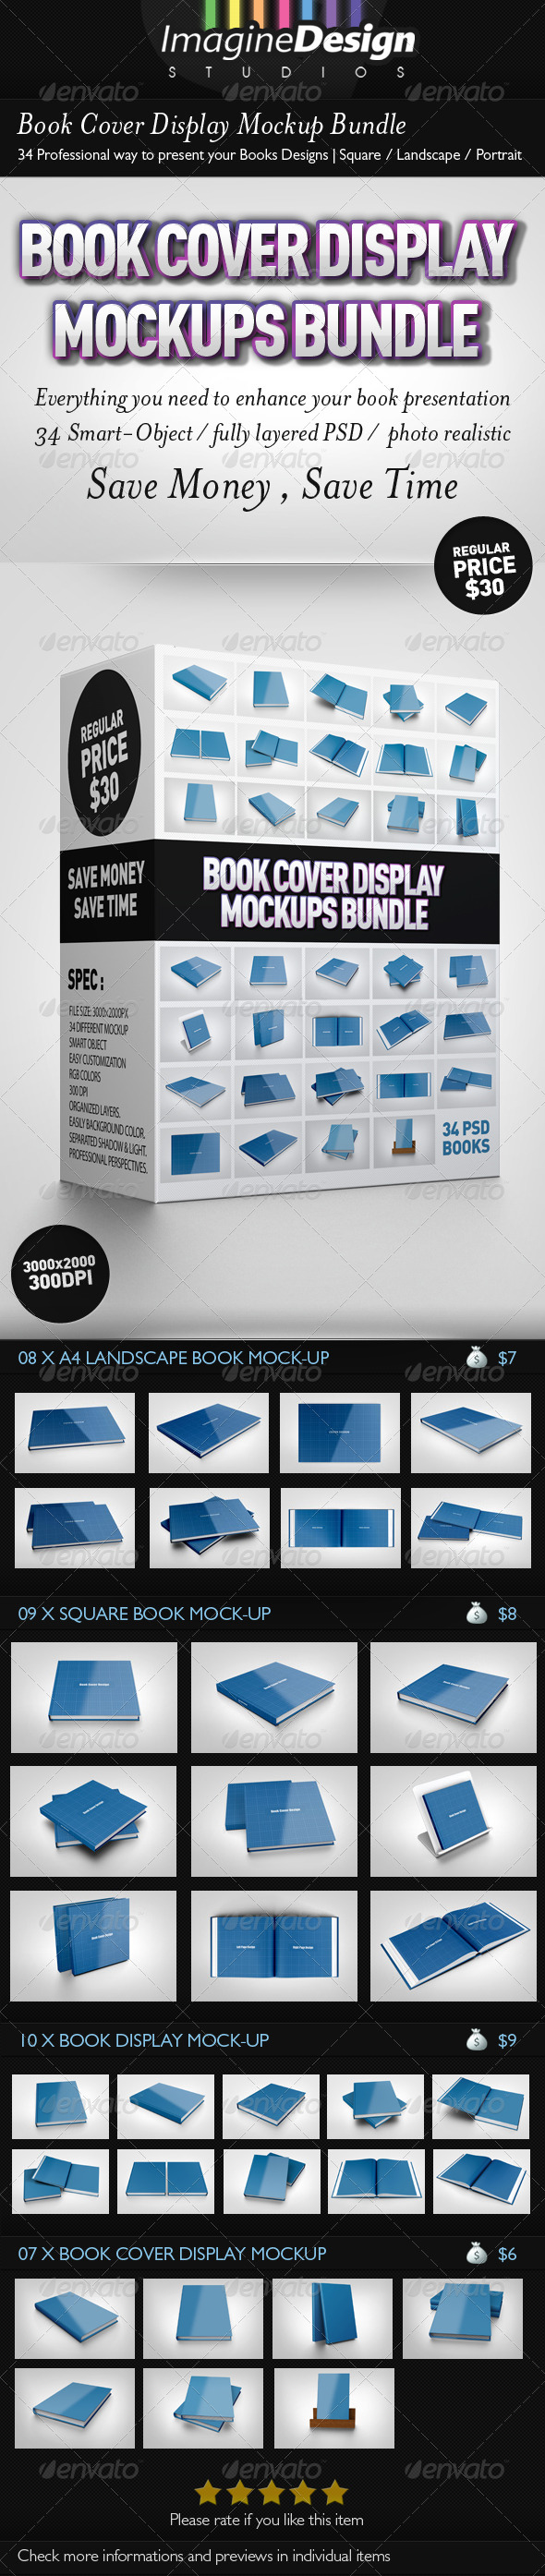 Book Cover Display Mockup Bundle